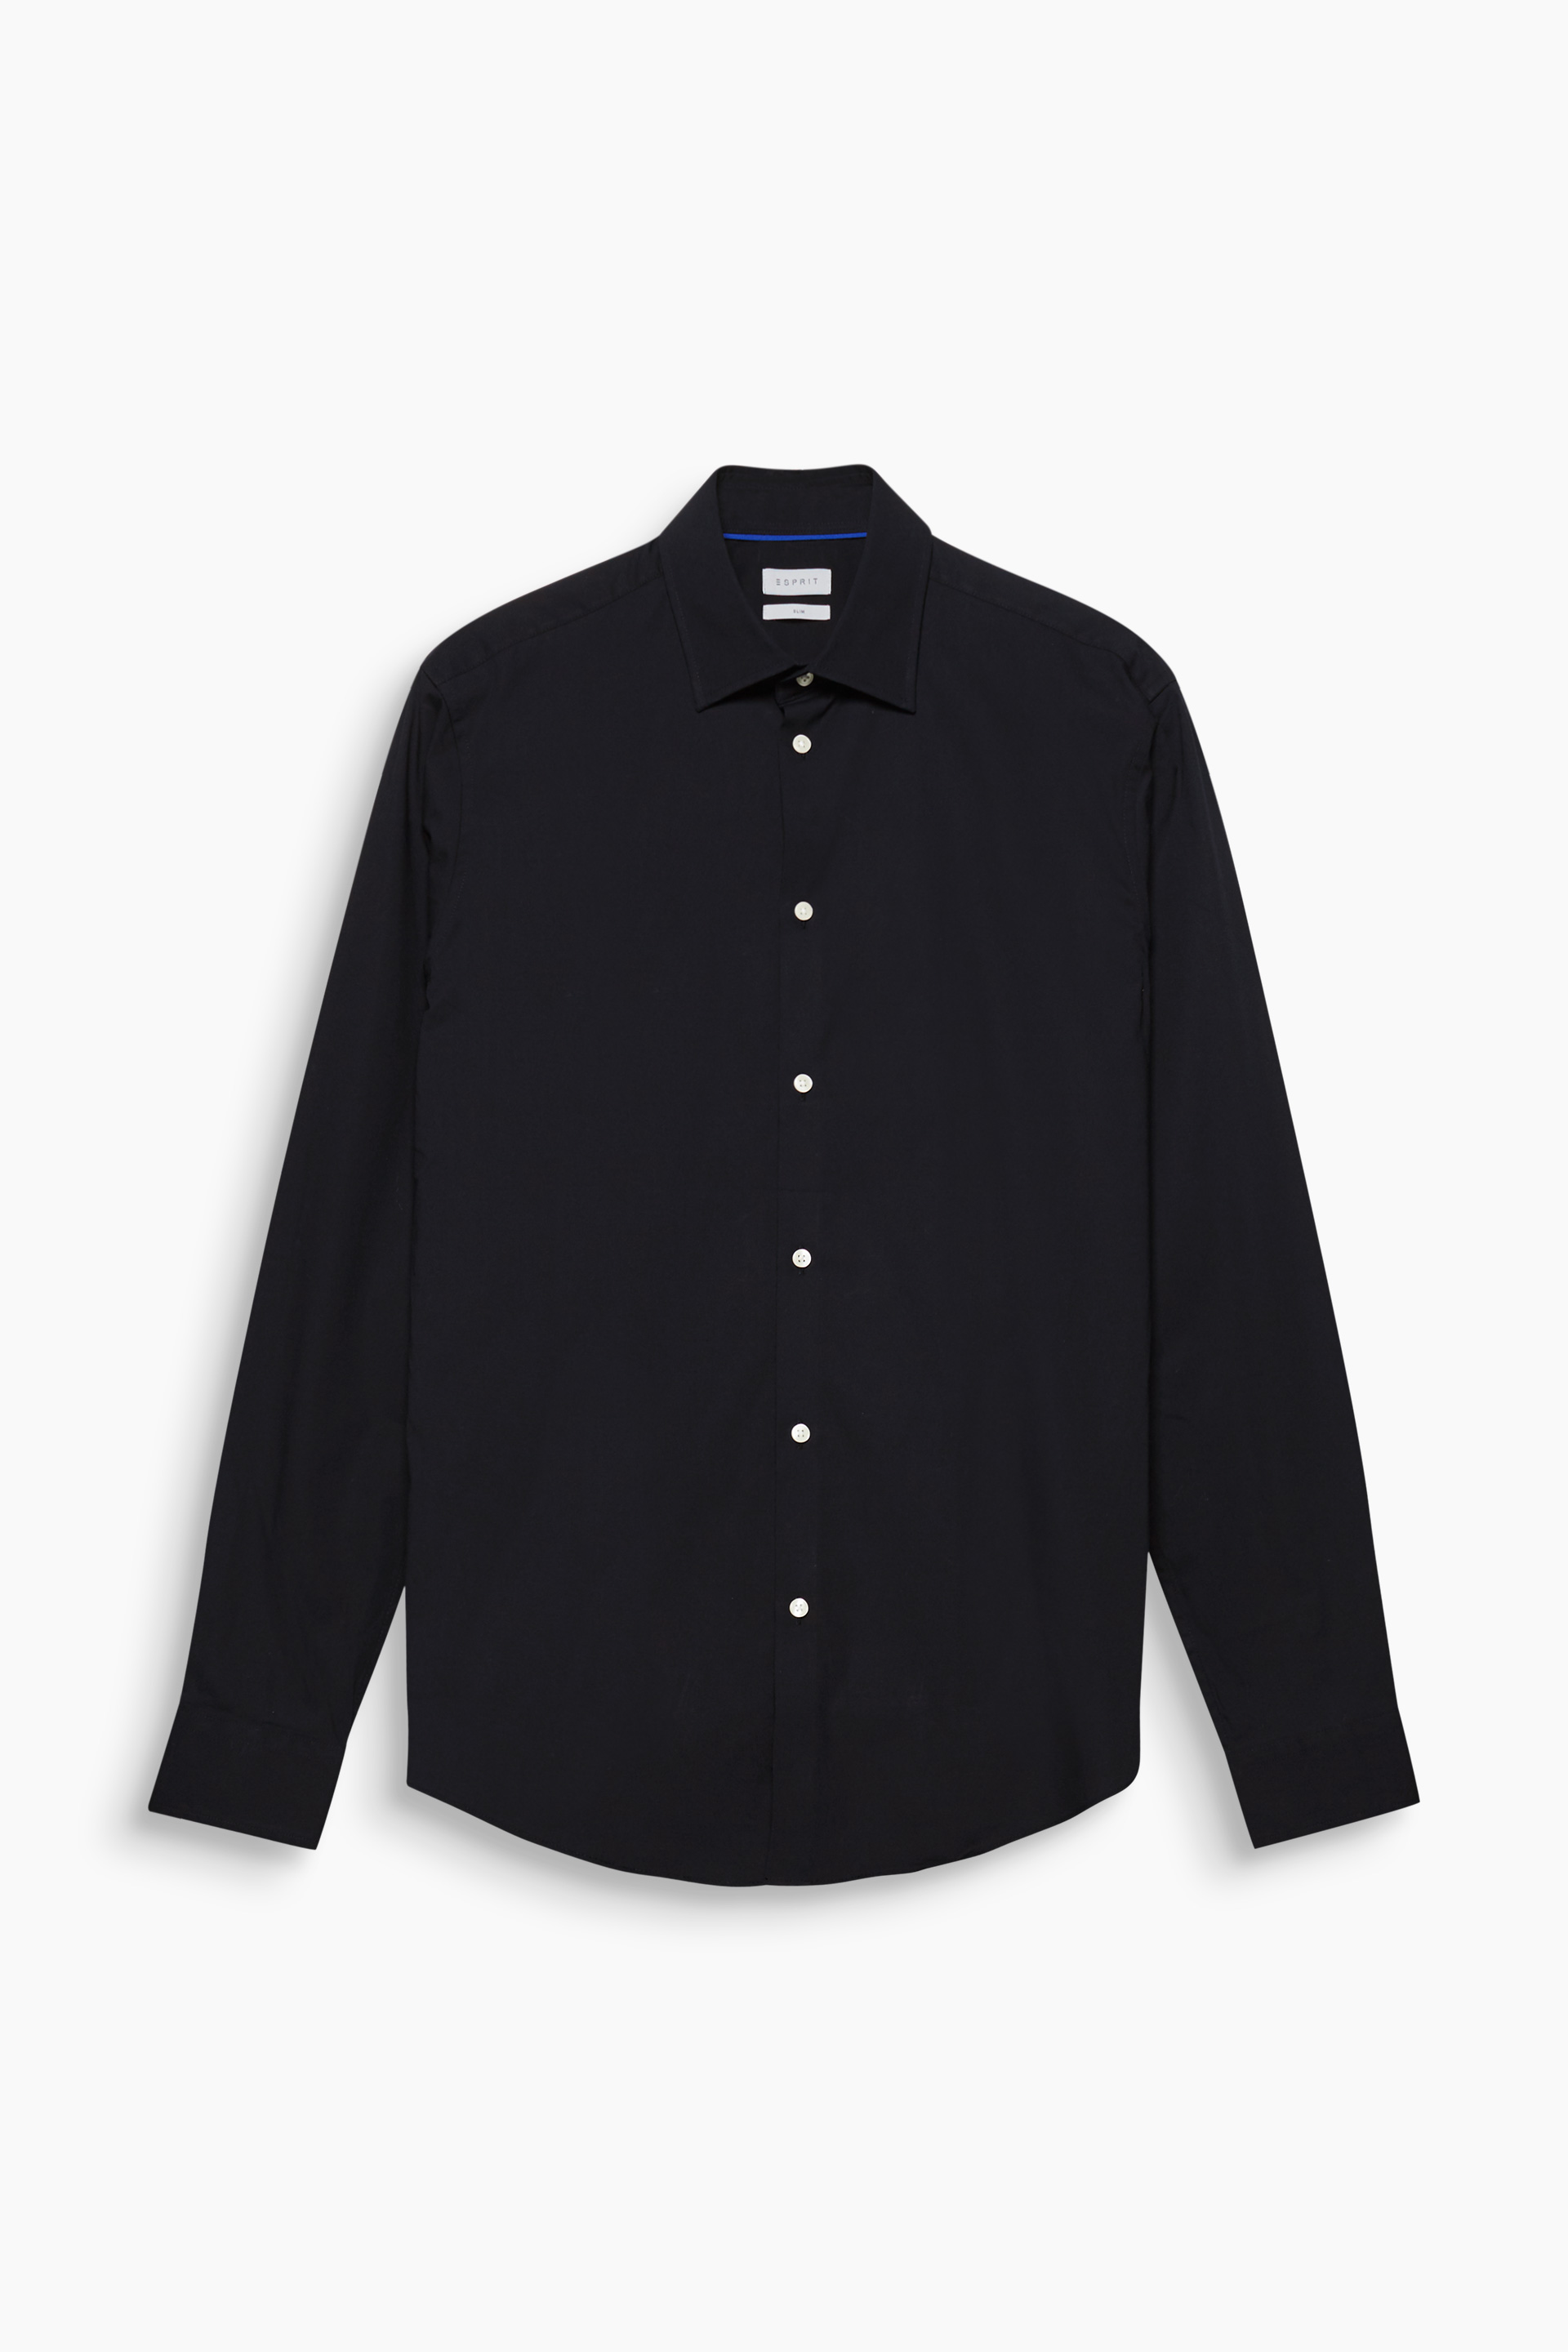 Esprit BLACK Slim Fit Stretch Cotton Shirt